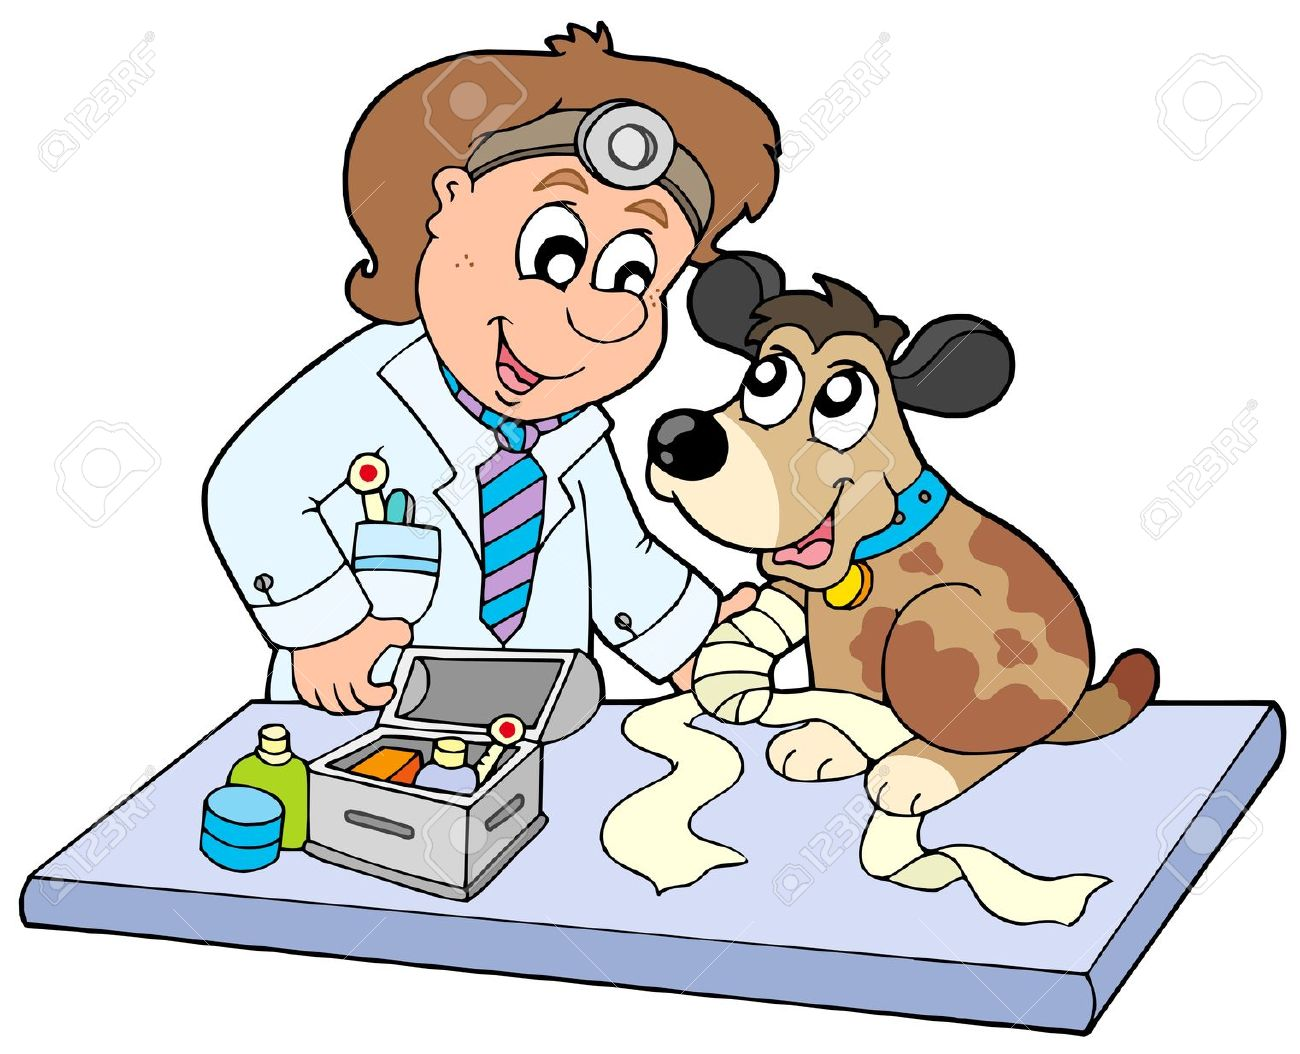 Veterinarian Clipart Fort. 6370096 Dog W-Veterinarian Clipart Fort. 6370096 Dog with sick paw at .-14